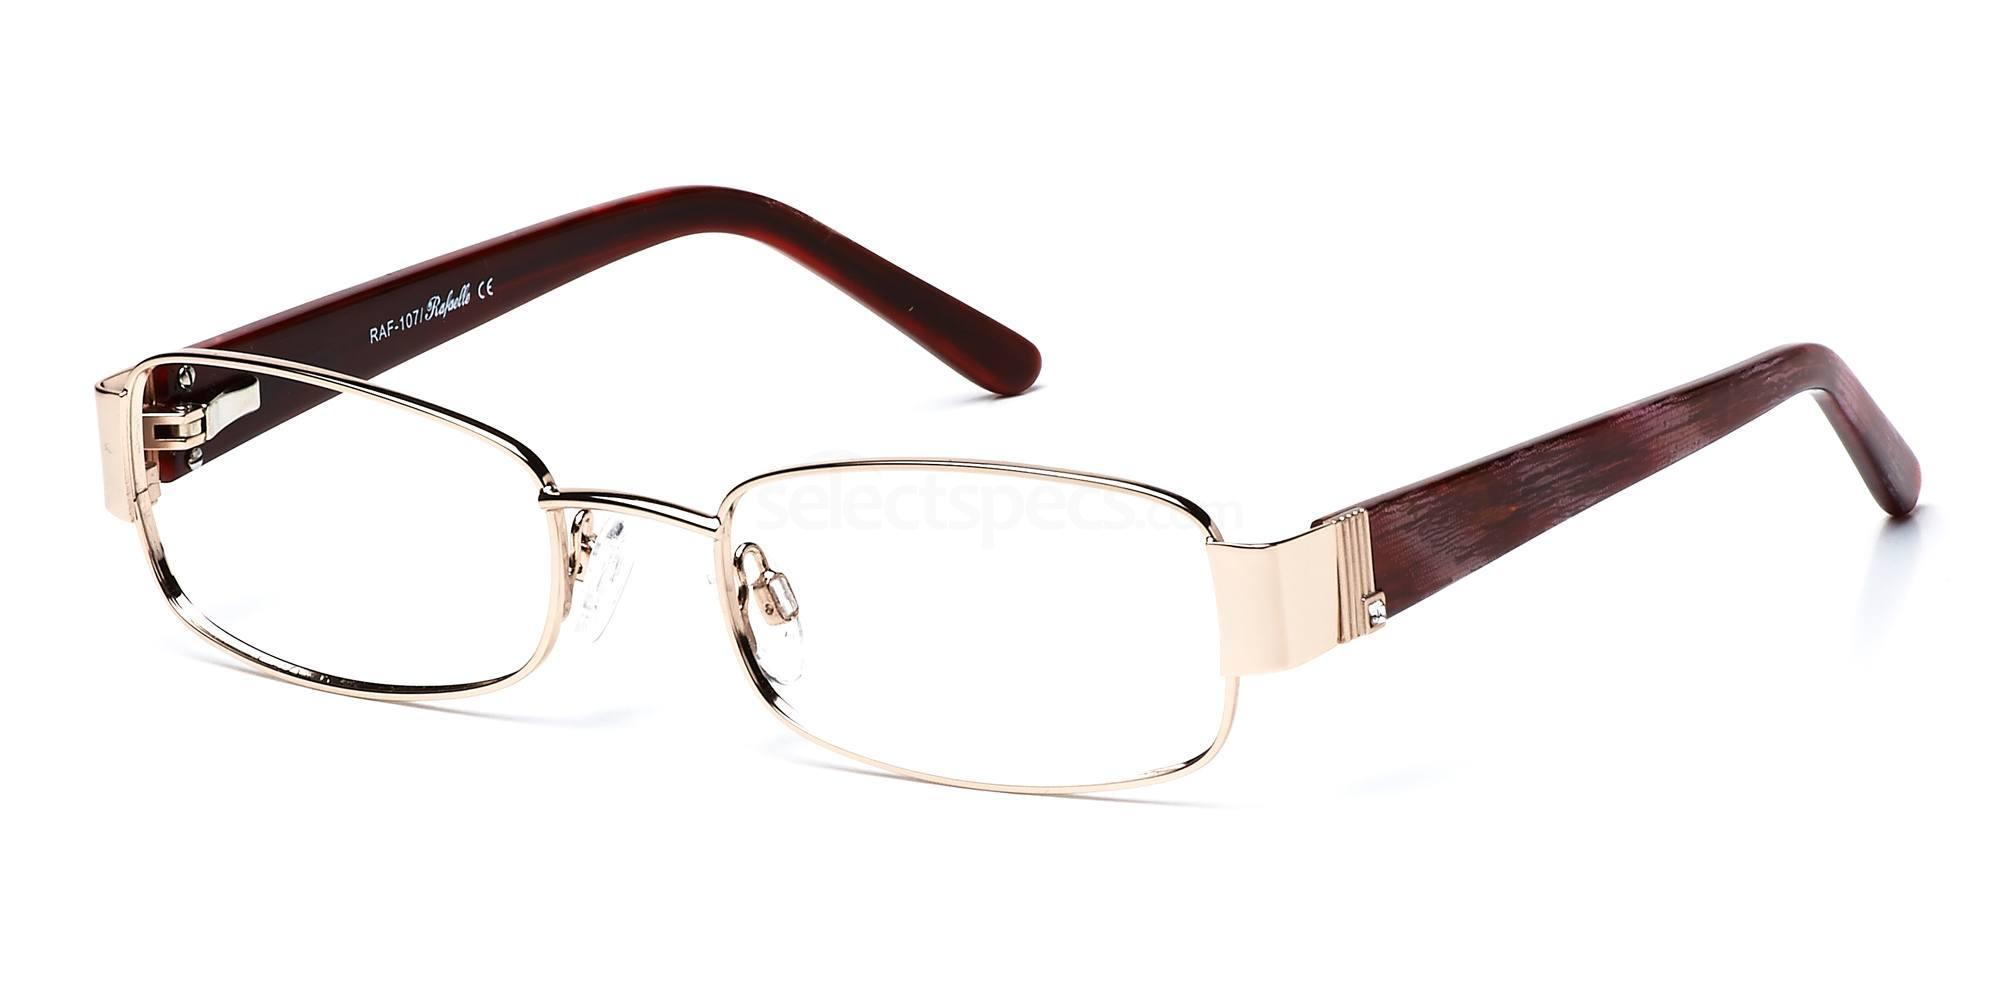 C1 RAF107 Glasses, Rafaelle